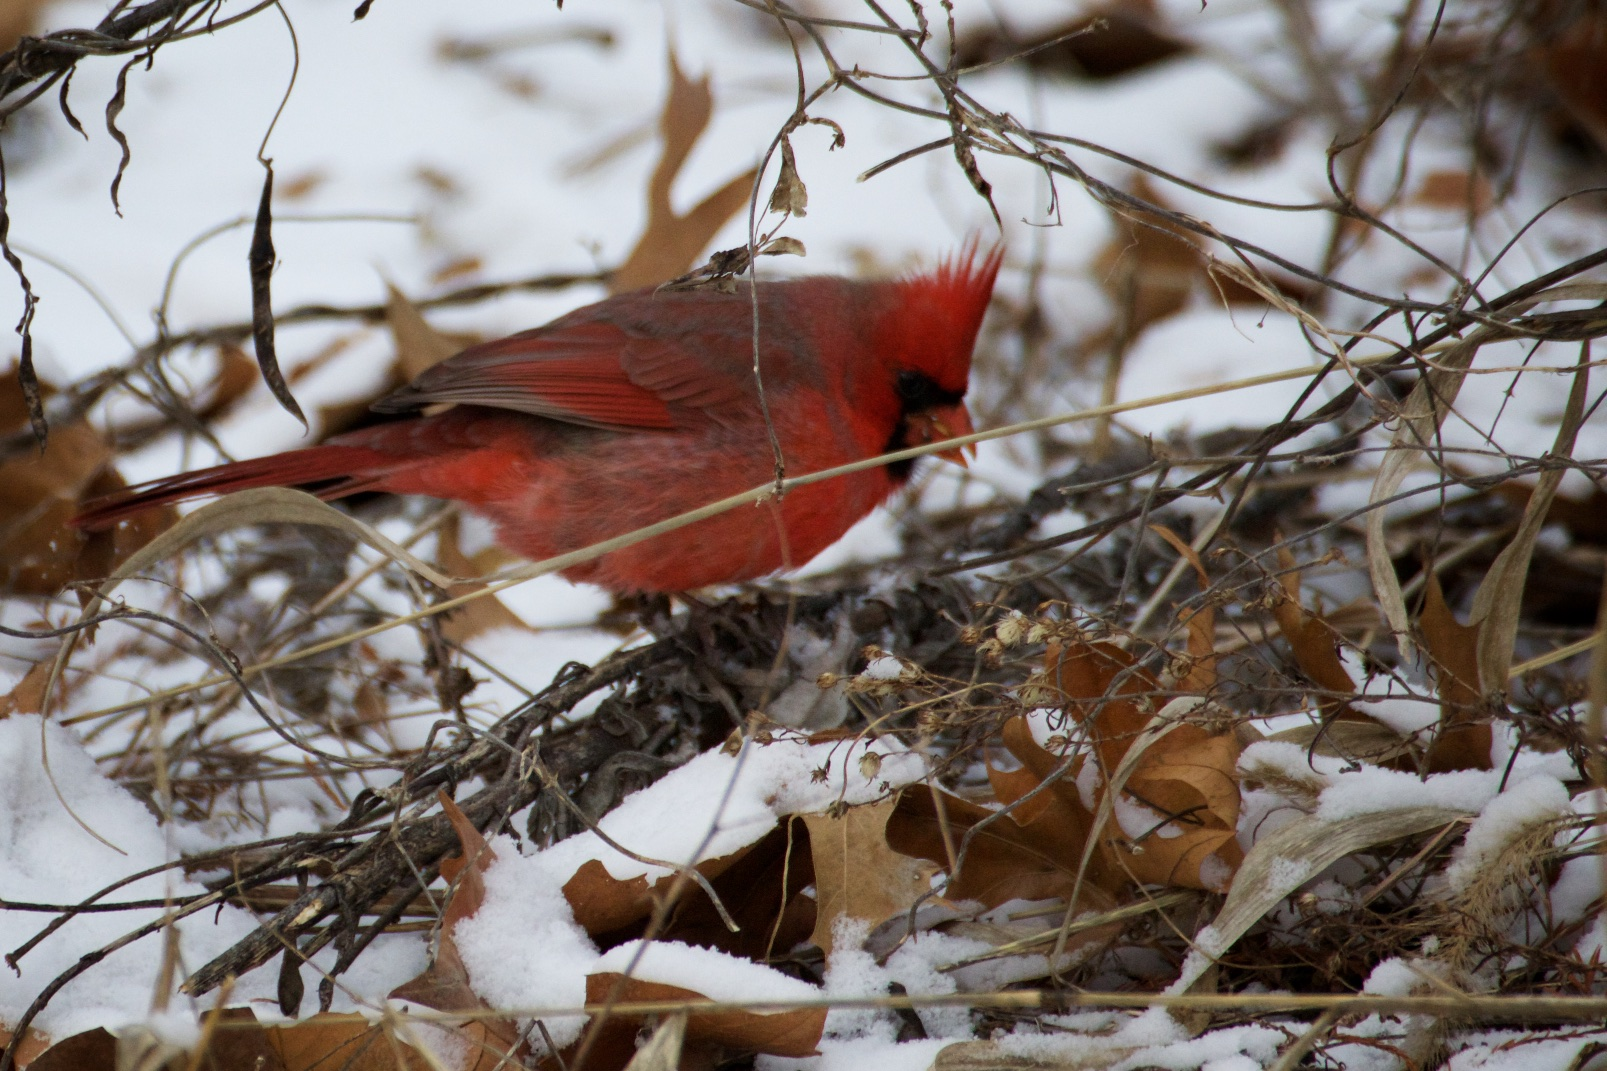 One of the member of the College of Cardinals.